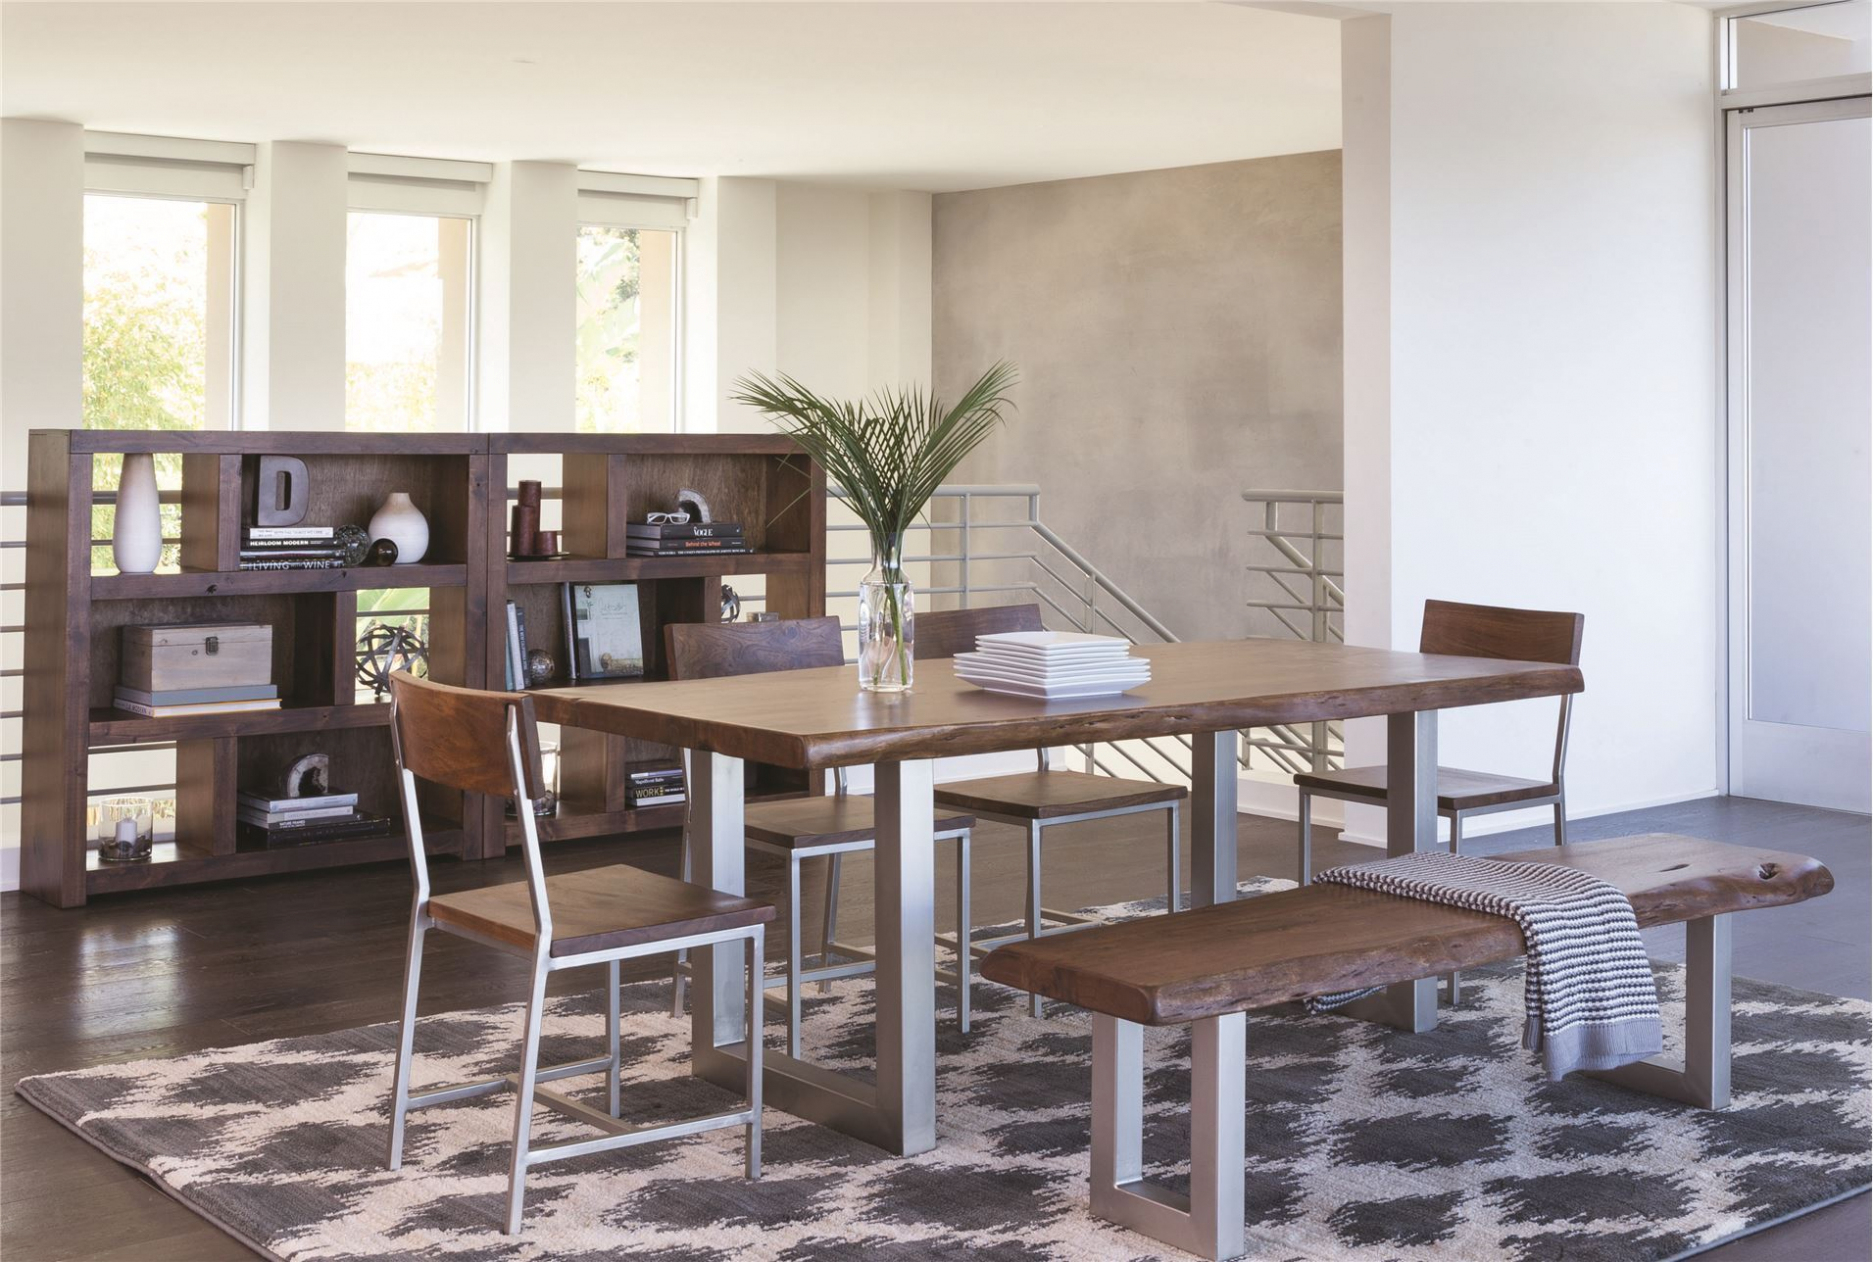 Dining Room Unique Your Residence Inspiration Reviews With Living with 15 Some of the Coolest Concepts of How to Makeover Living Spaces Living Room Sets